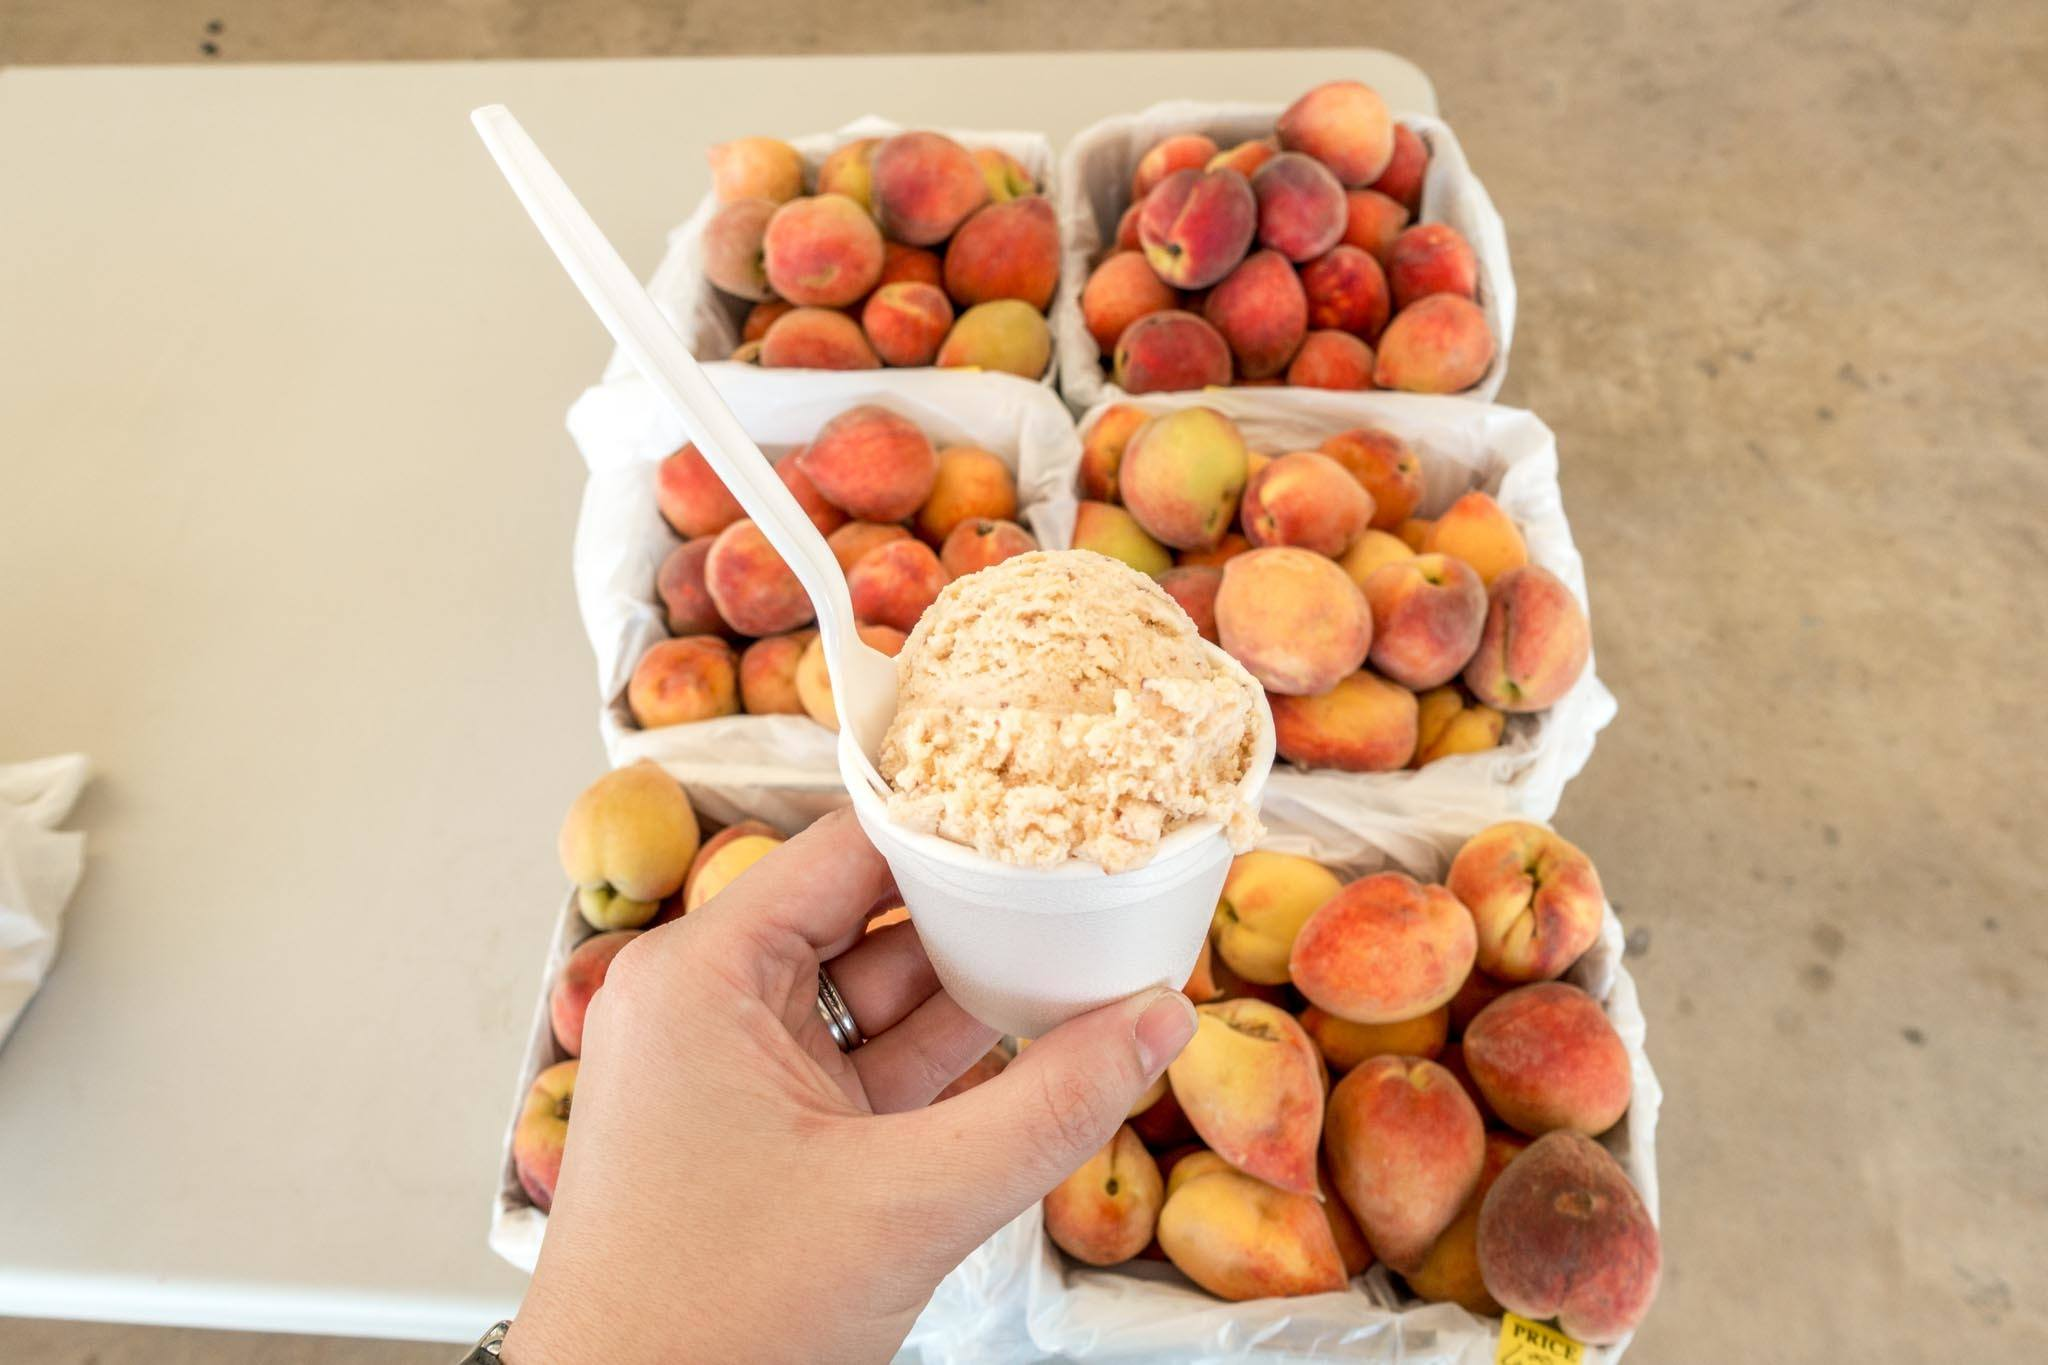 Fresh peaches on a table and peach ice cream in a cup